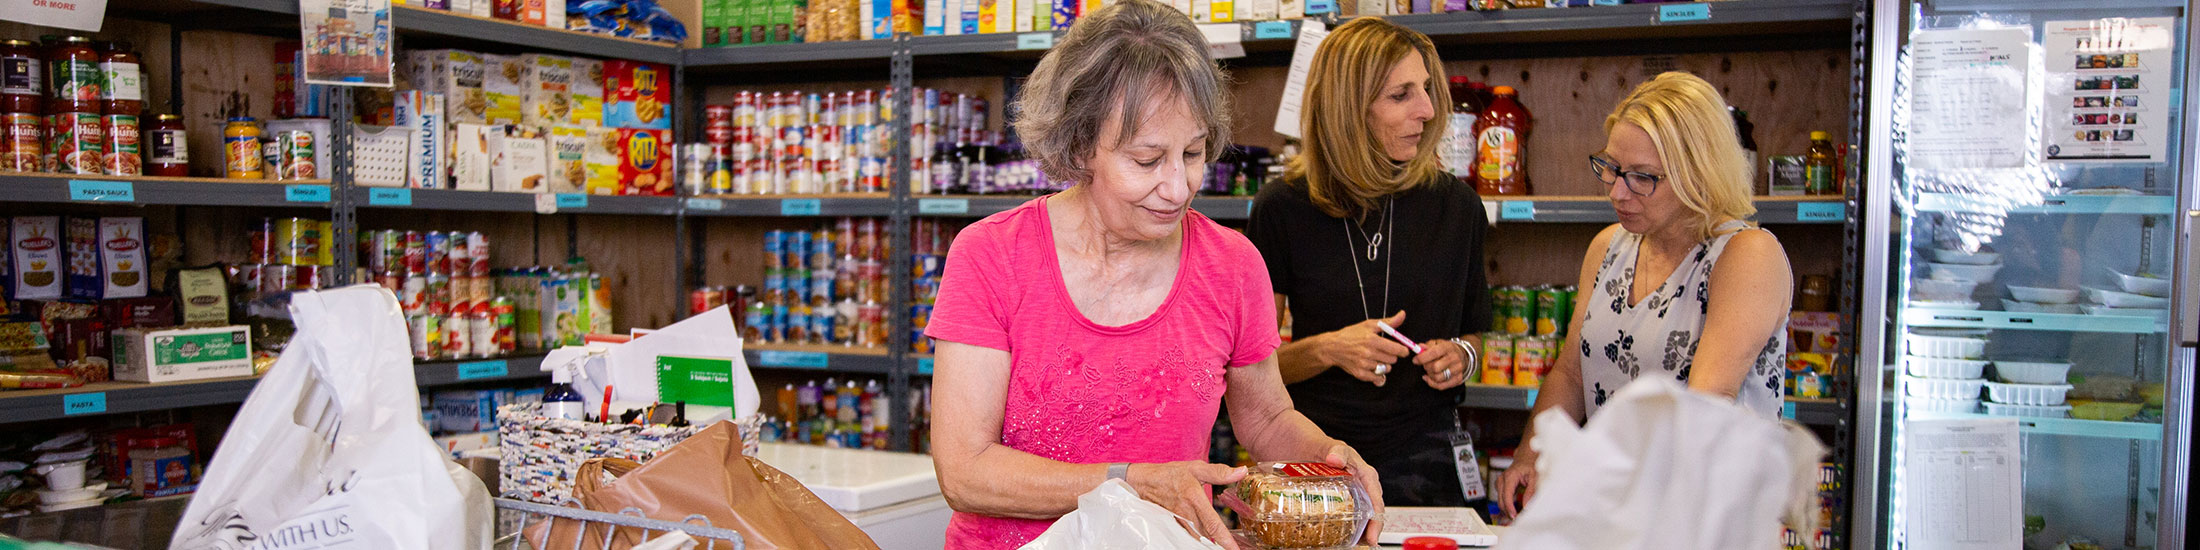 foothills food bank programs and resources